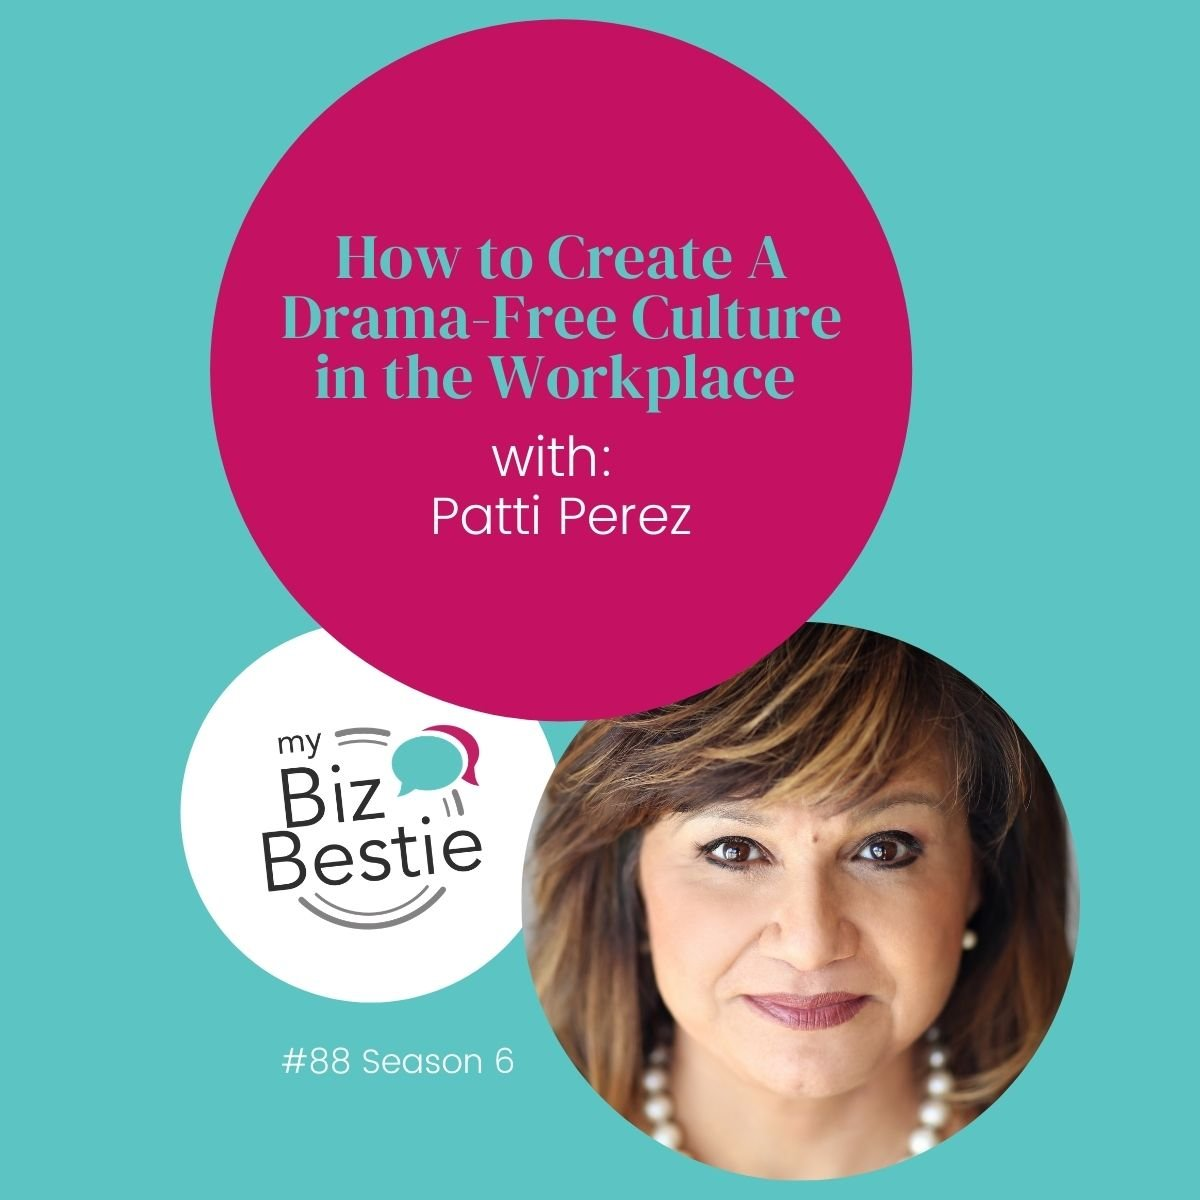 How To Create A Drama-Free Culture In The Workplace With Patti Perez